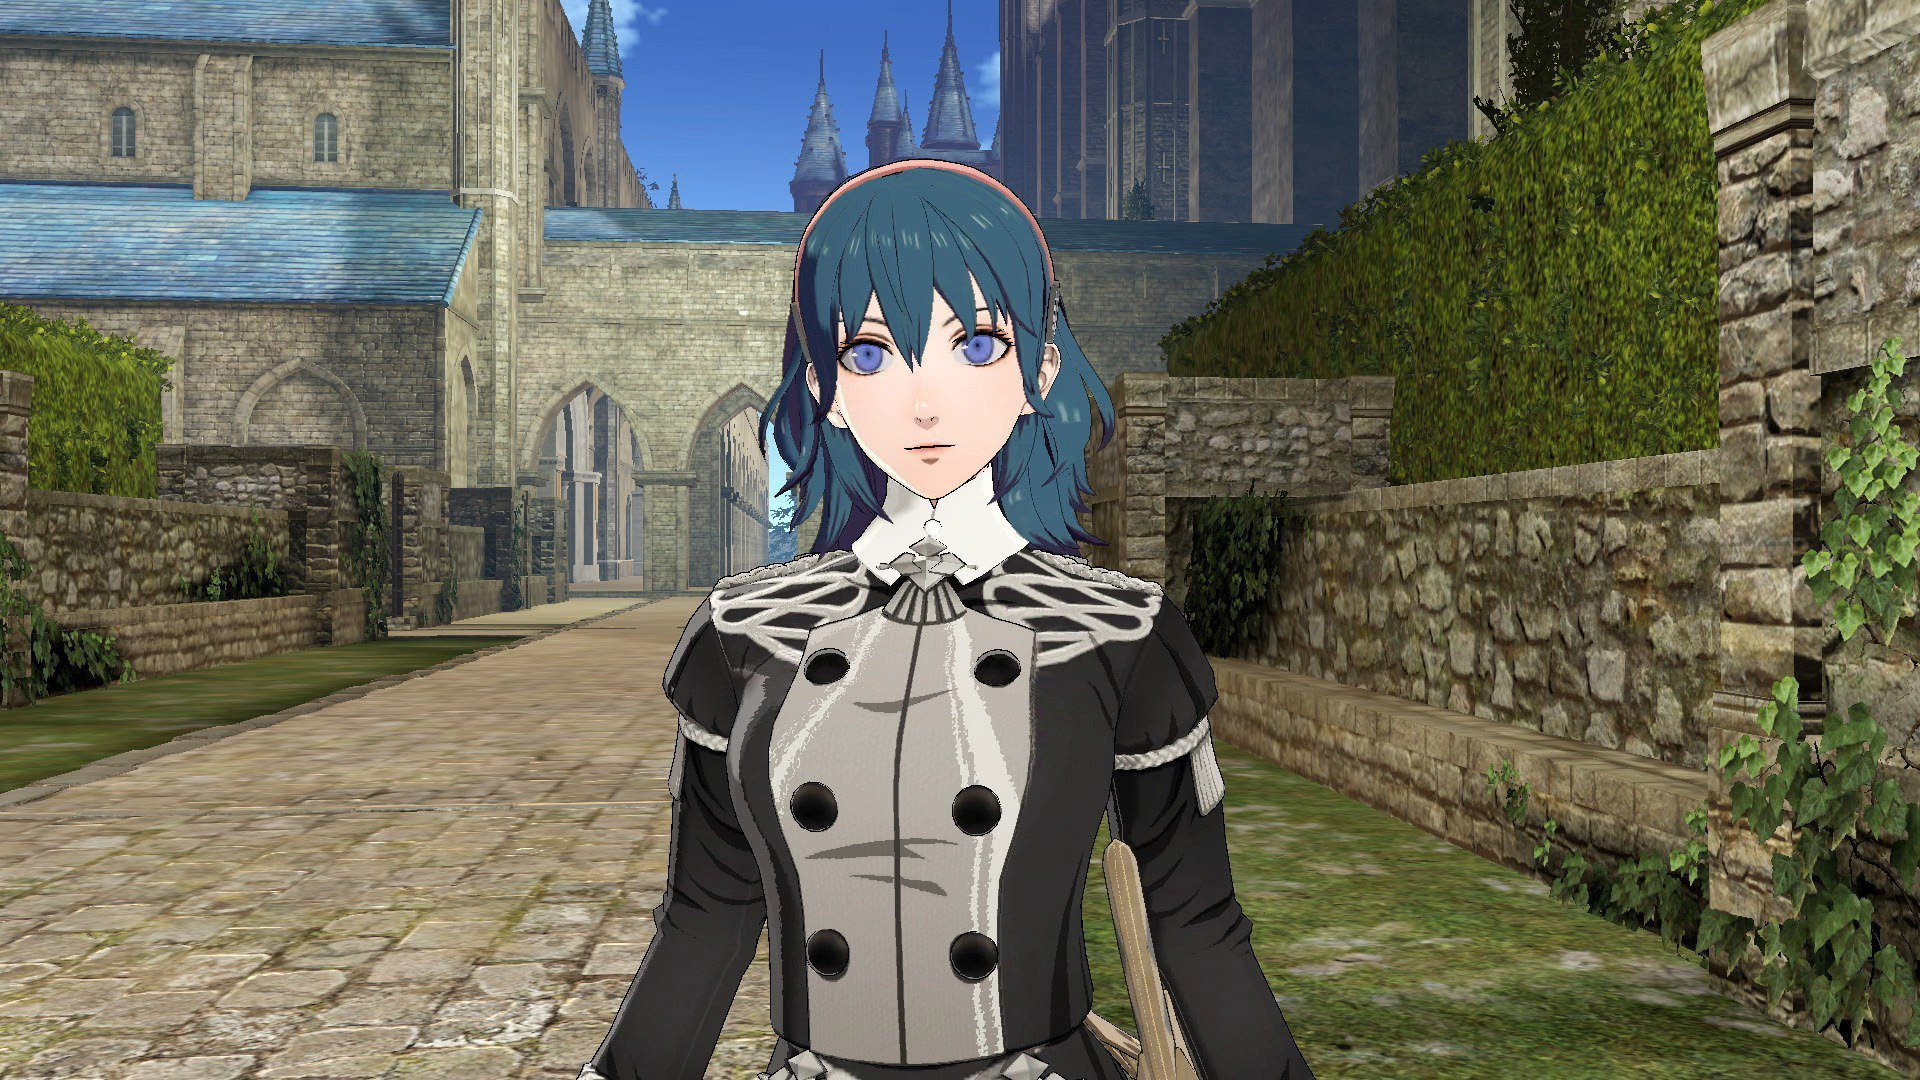 Cómo obtener Knowledge Gem en Fire Emblem: Three Houses